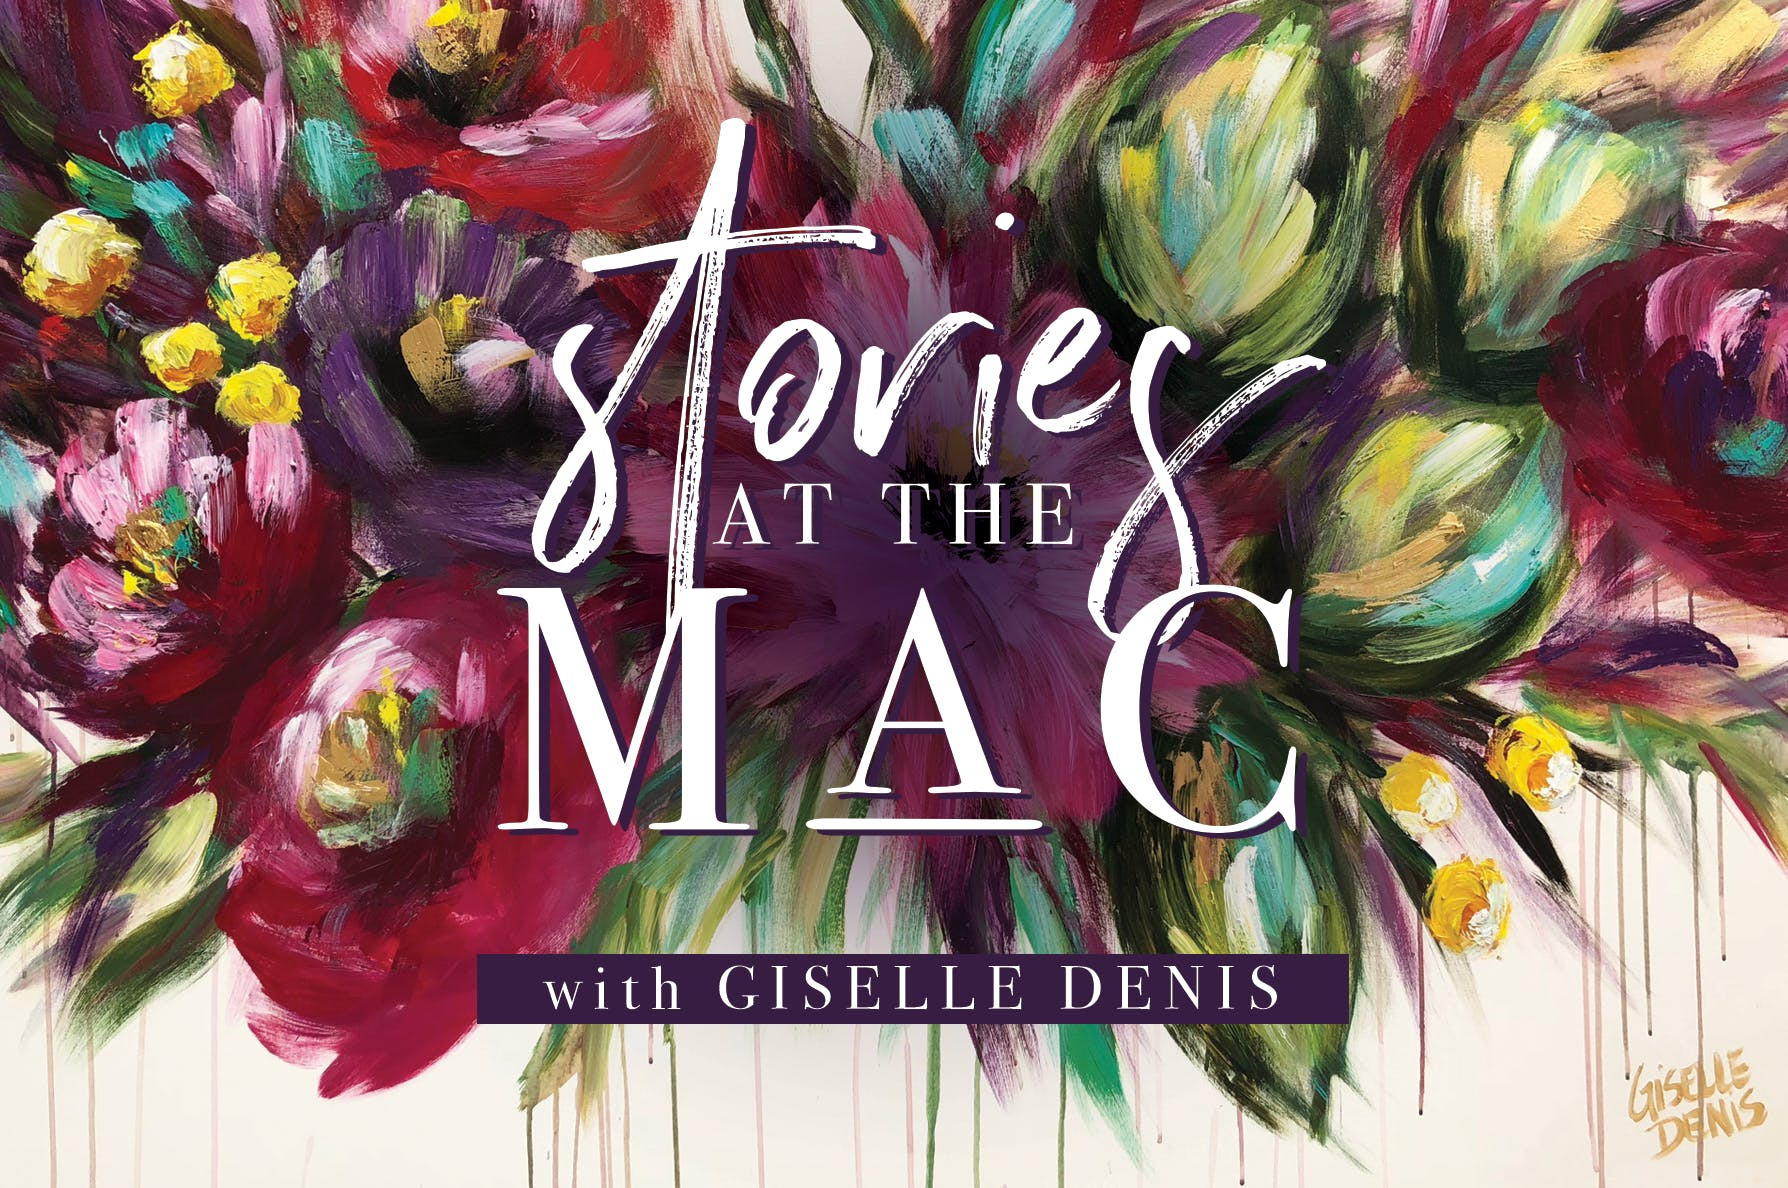 Stories at the Mac - An artshow with Giselle